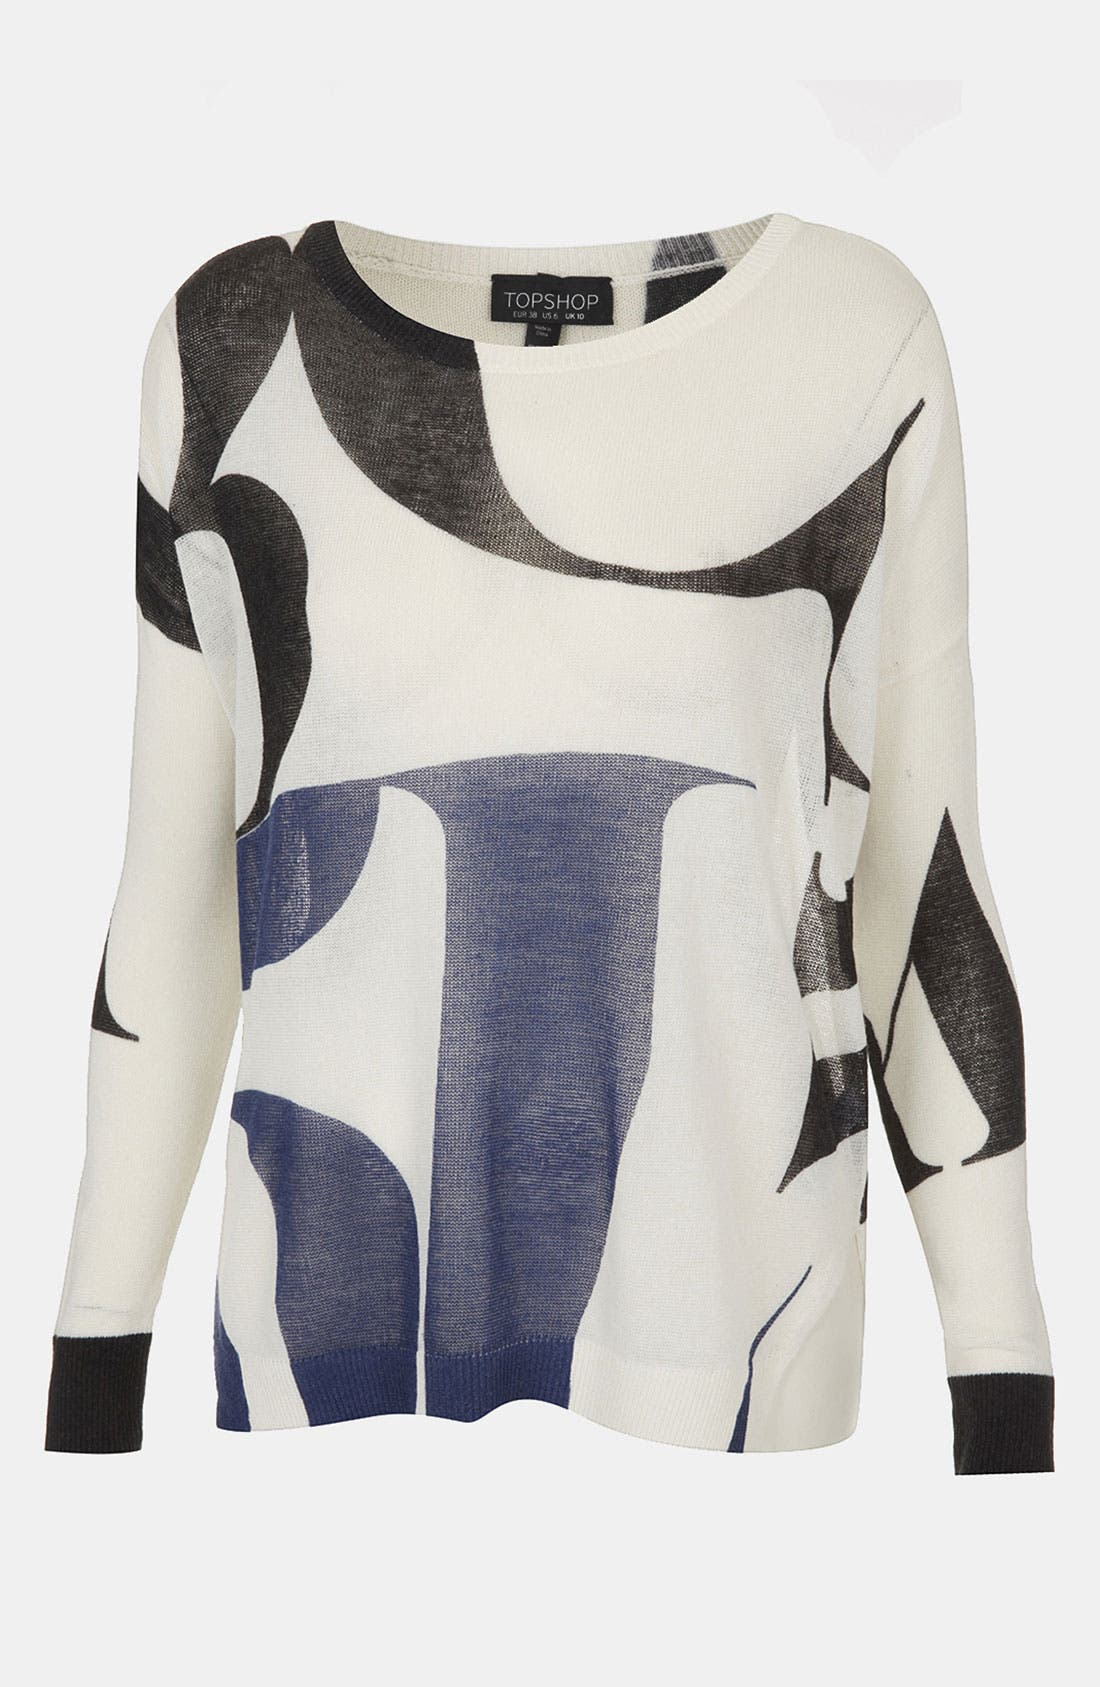 Alternate Image 1 Selected - Topshop 'Arthaus Letter' Print Sweater